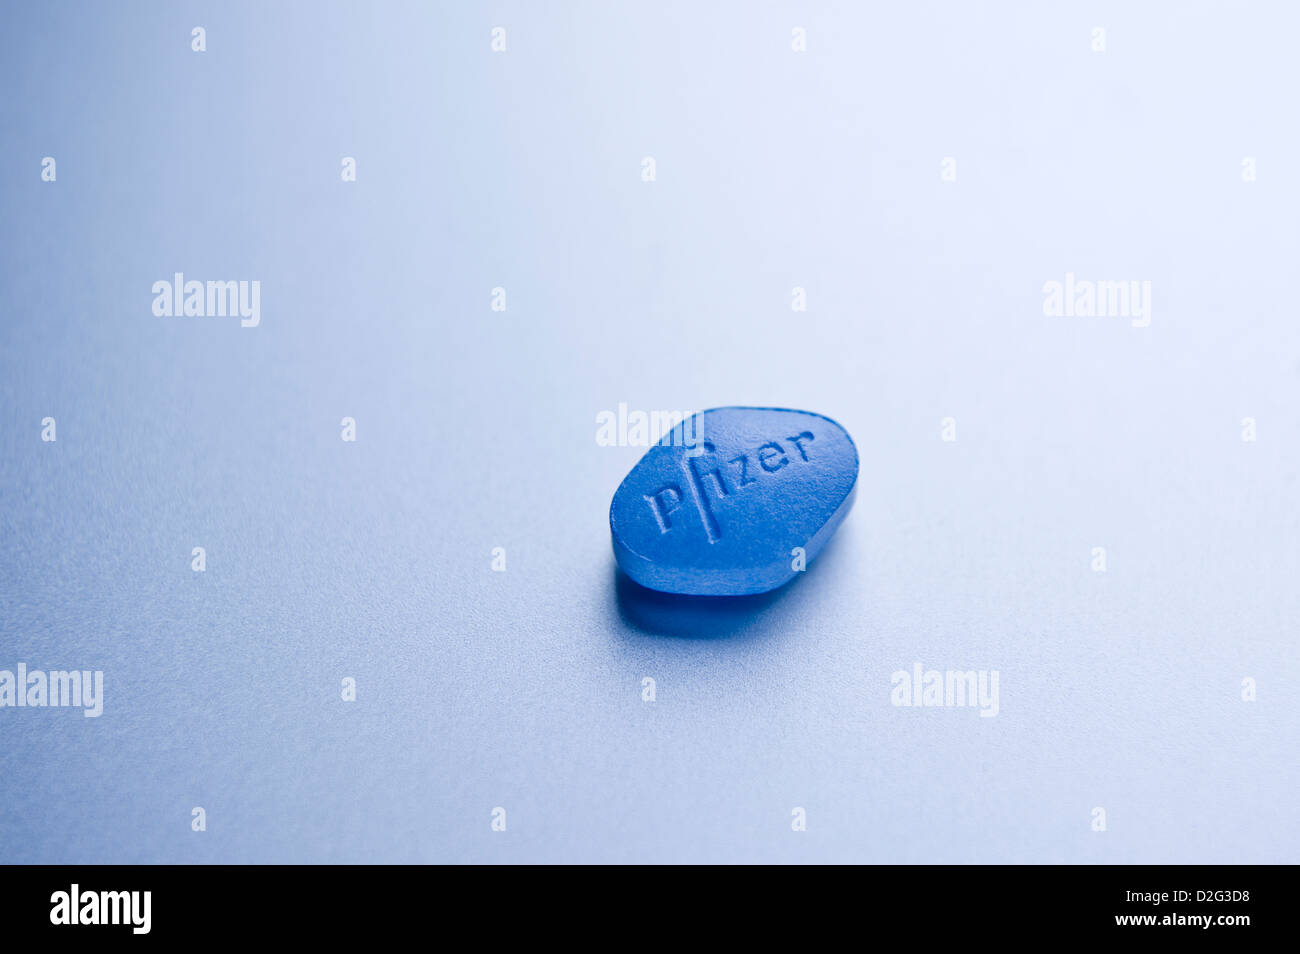 Close up Detail of a 100mg Sildenafil Citrate Pfizer Viagra Pill on silver background - Stock Image